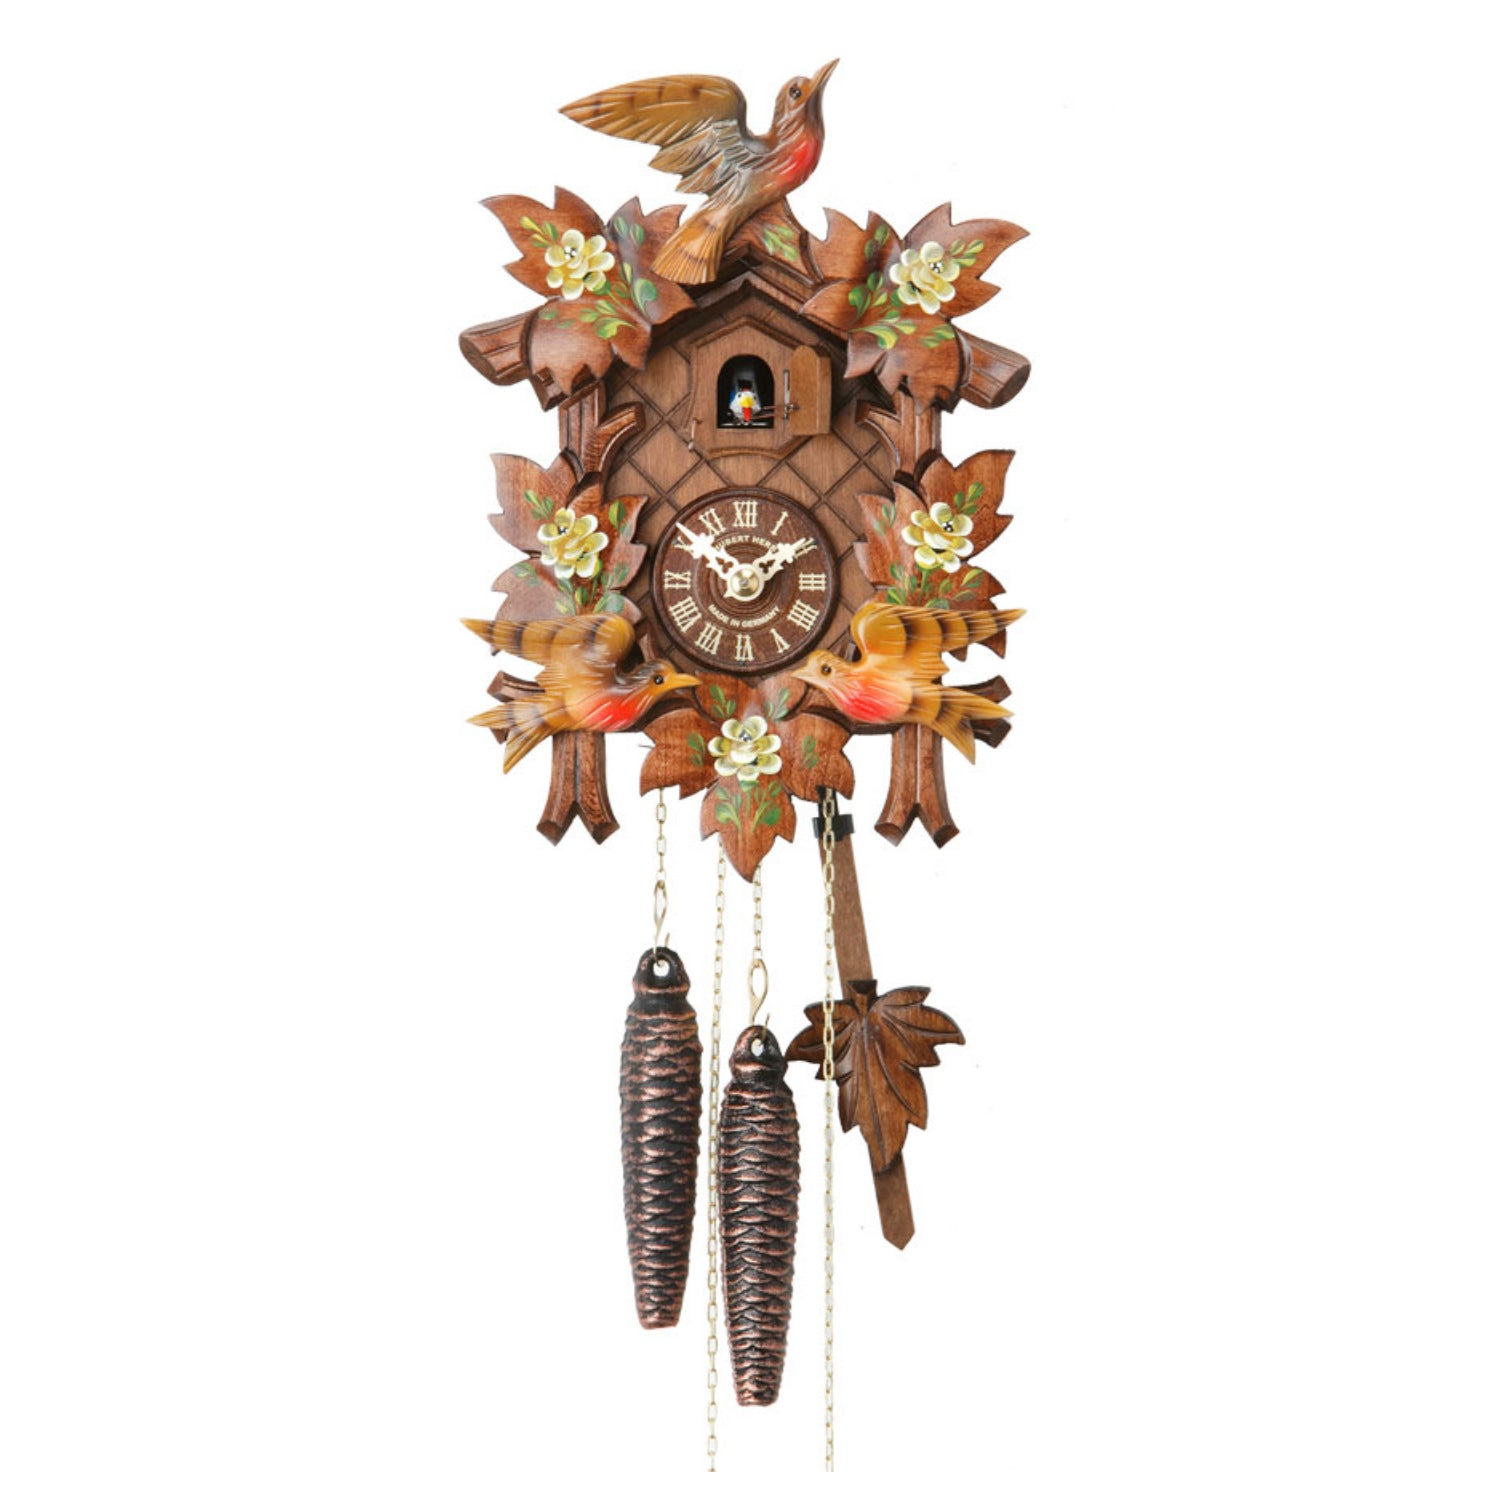 Carved 1 Day Cuckoo Clock With Two Colourful Birds And Leaves 25cm By Cuckoo Collections